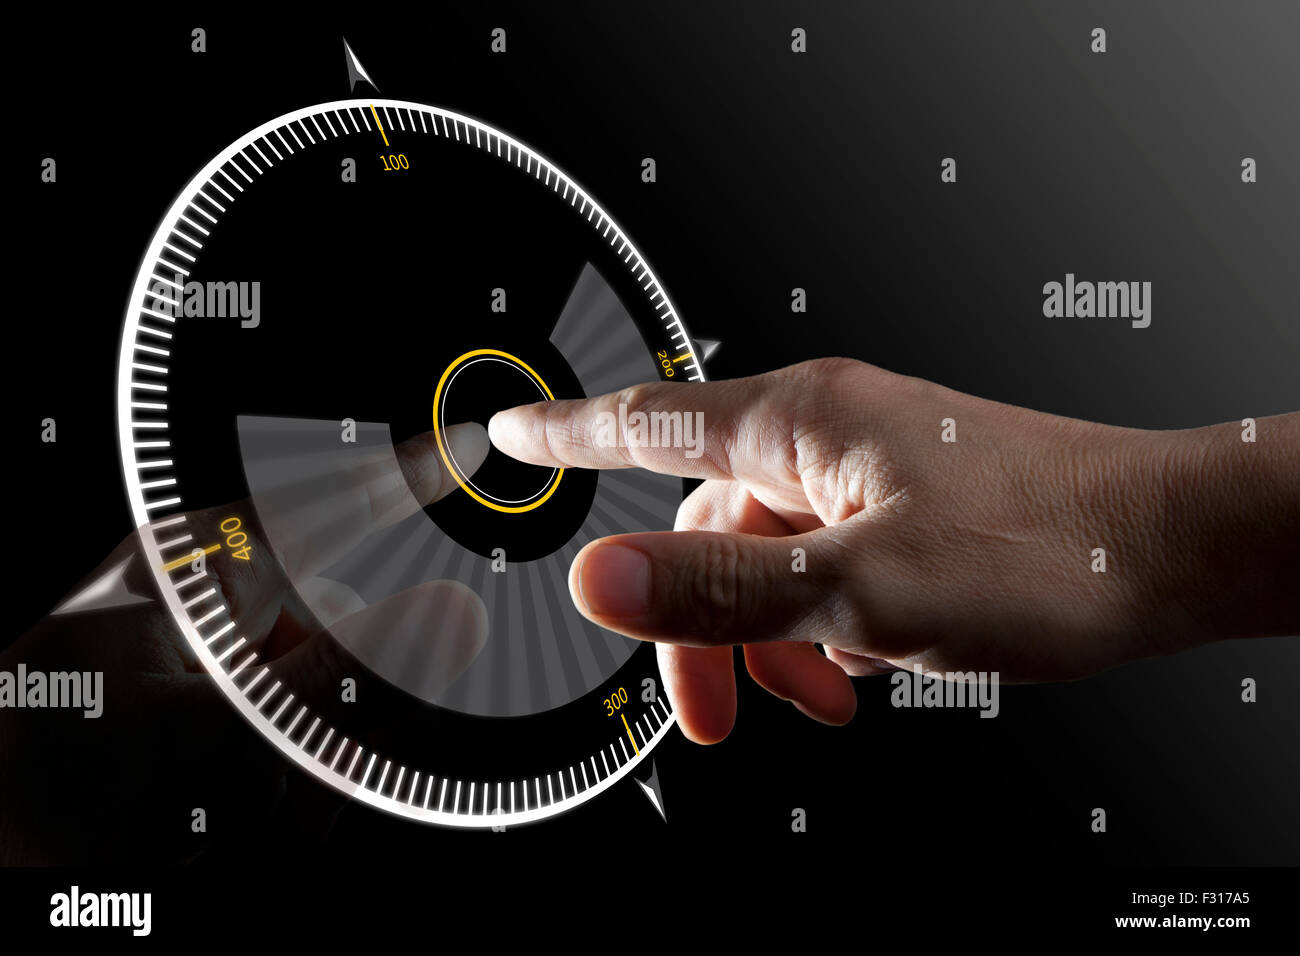 finger touch virtual button with black background - Stock Image